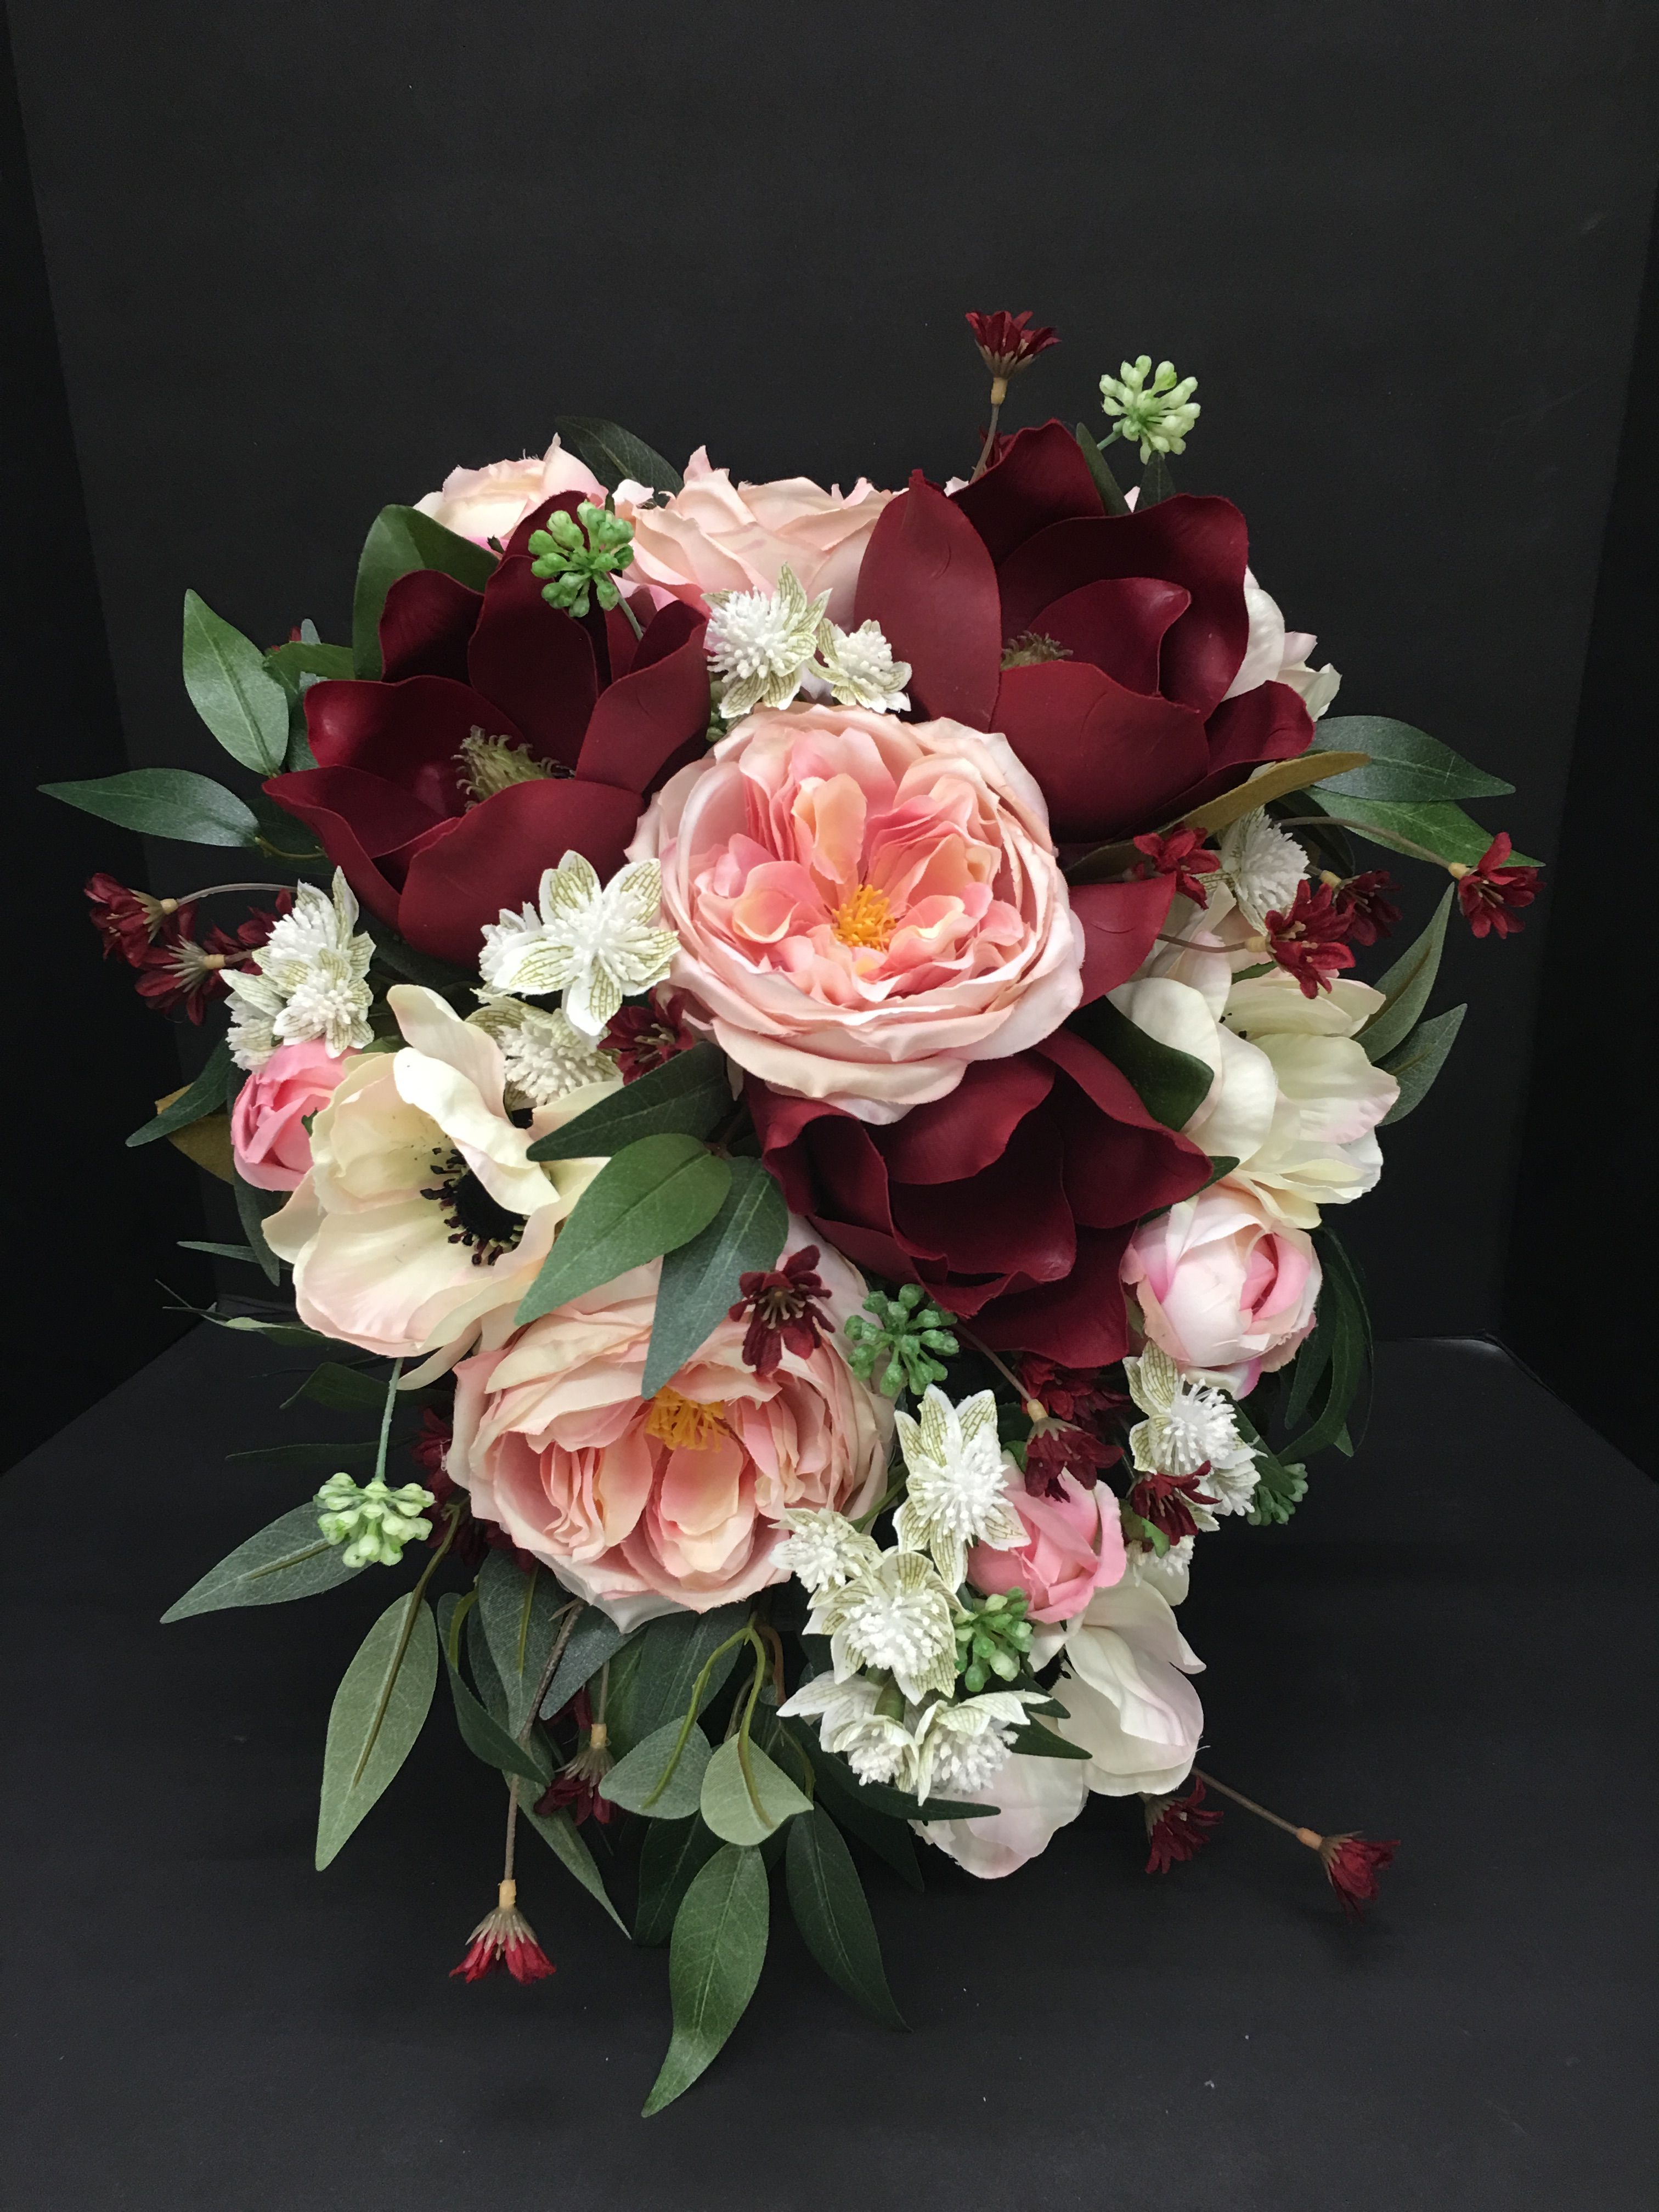 Mulberry Bridal Bouquet Maroon Pink White Anemone Flowers